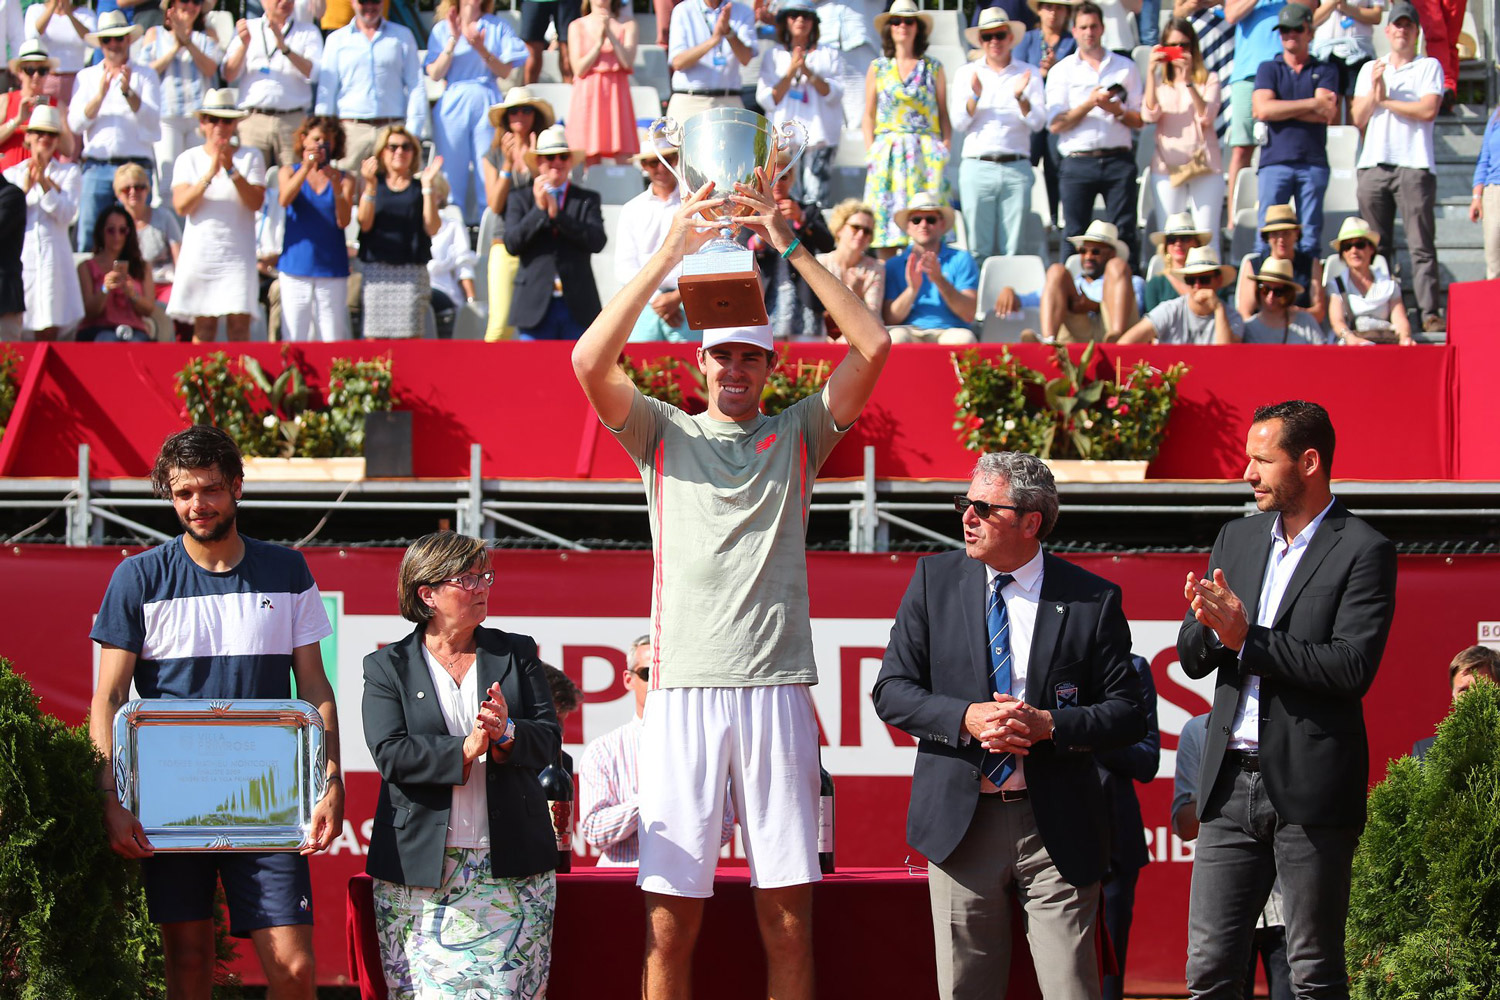 Palm Coasts Opelka Wins Pro Tennis Title In France 2nd On Circuit Reily Raising His Second Trophy Sunday Atp World Tour